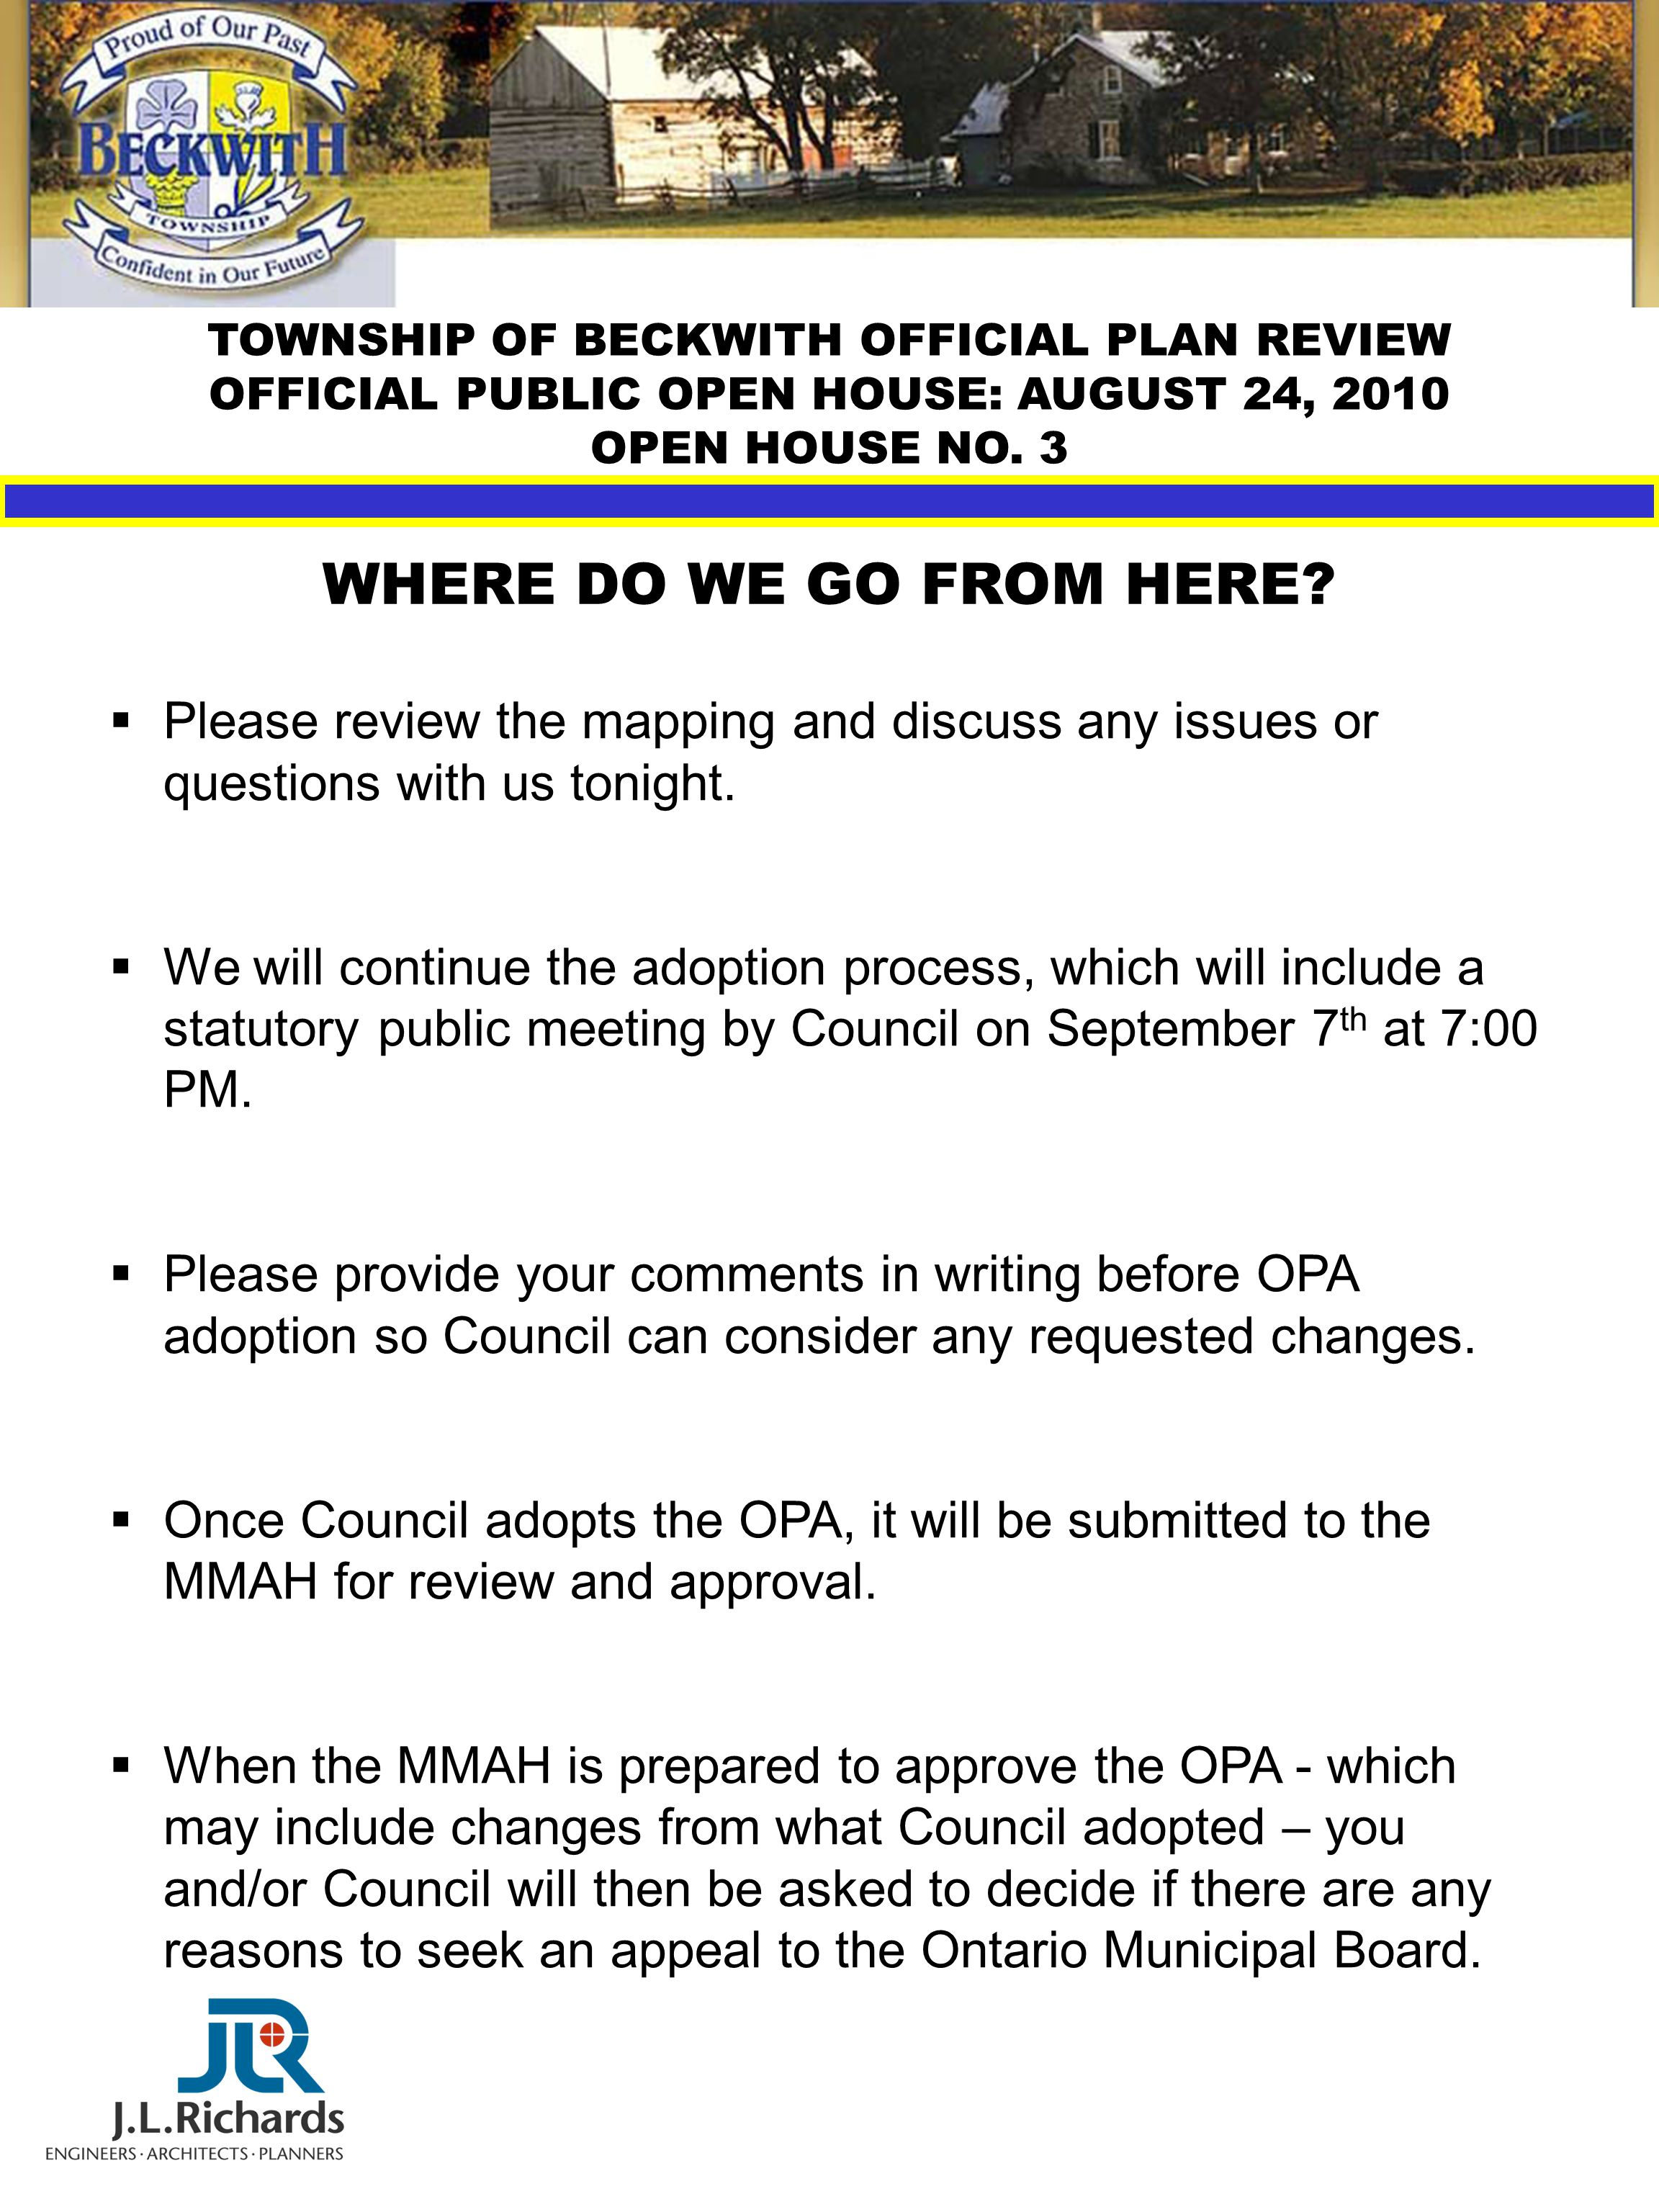 TOWNSHIP OF BECKWITH OFFICIAL PLAN REVIEW OFFICIAL PUBLIC OPEN HOUSE: AUGUST 24, 2010 OPEN HOUSE NO.